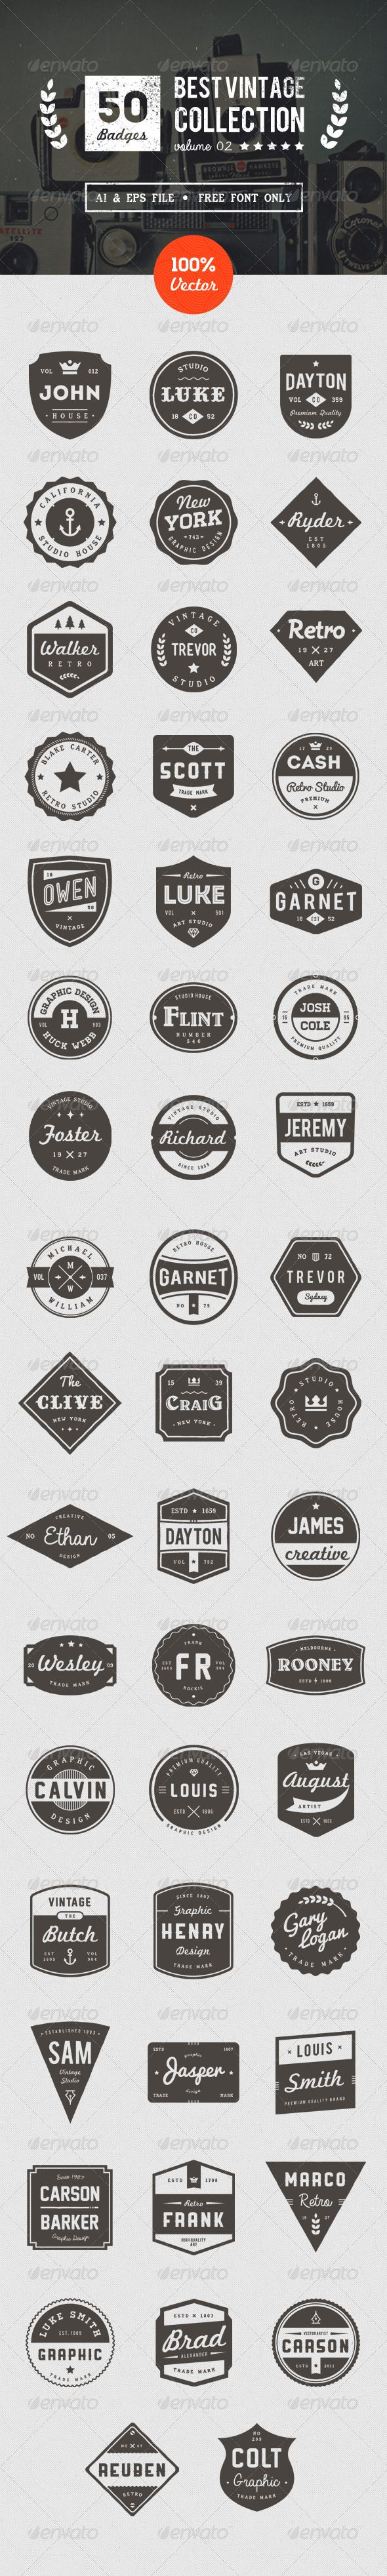 best illustration images on pinterest icon design logos and